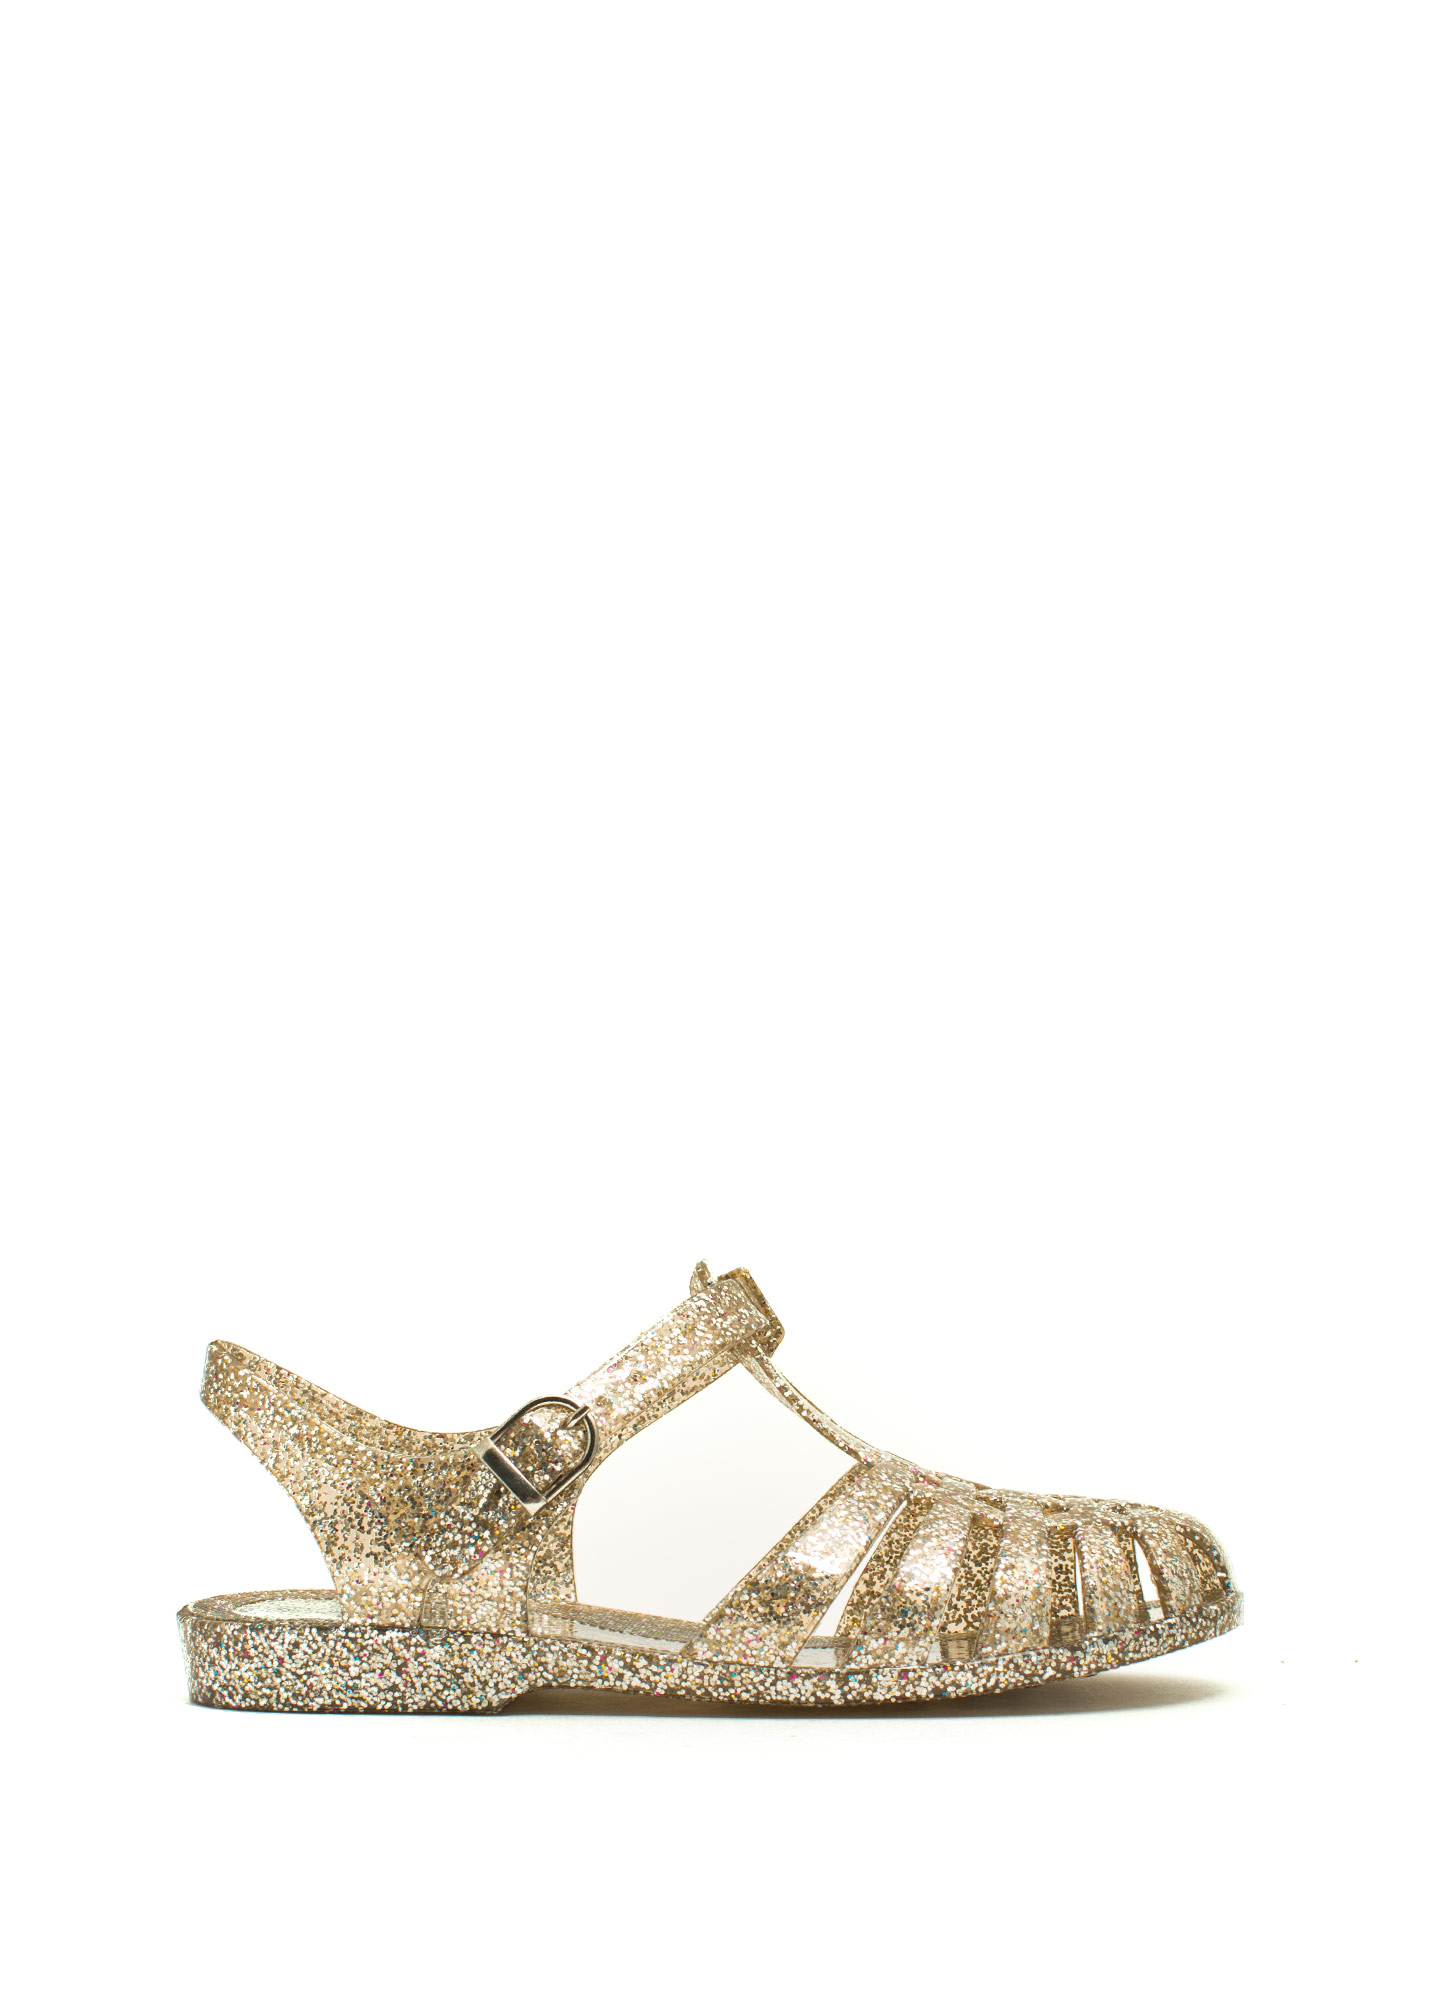 All That Glitters Caged Jelly Sandals CLEARMULTI